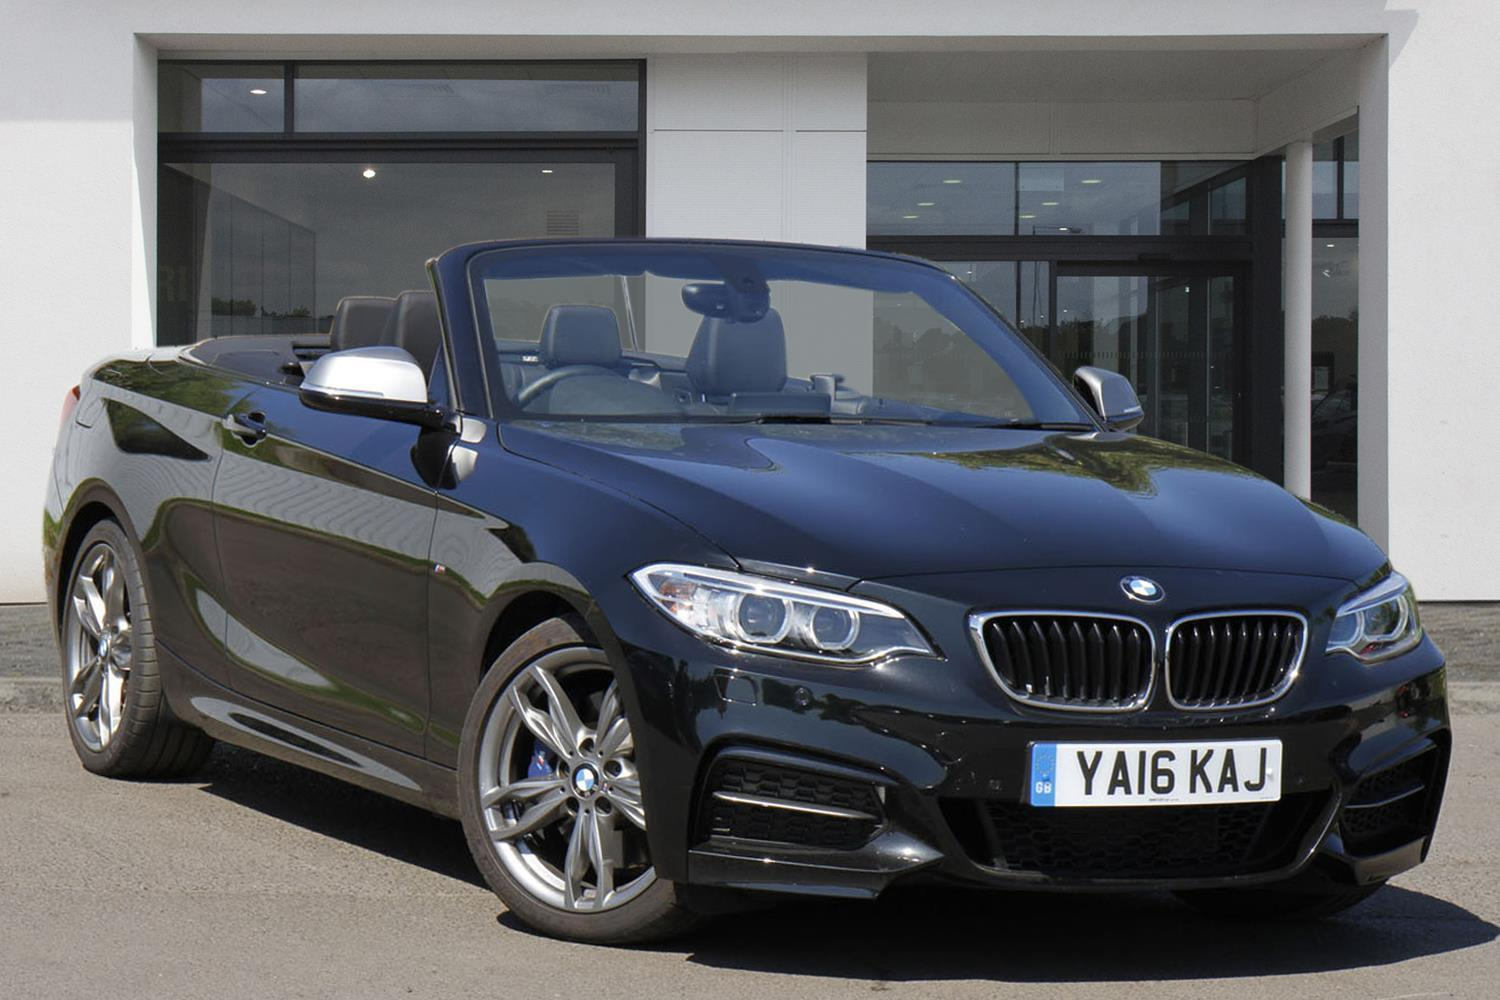 BMW 2 Series Convertible YA16KAJ - Image 10